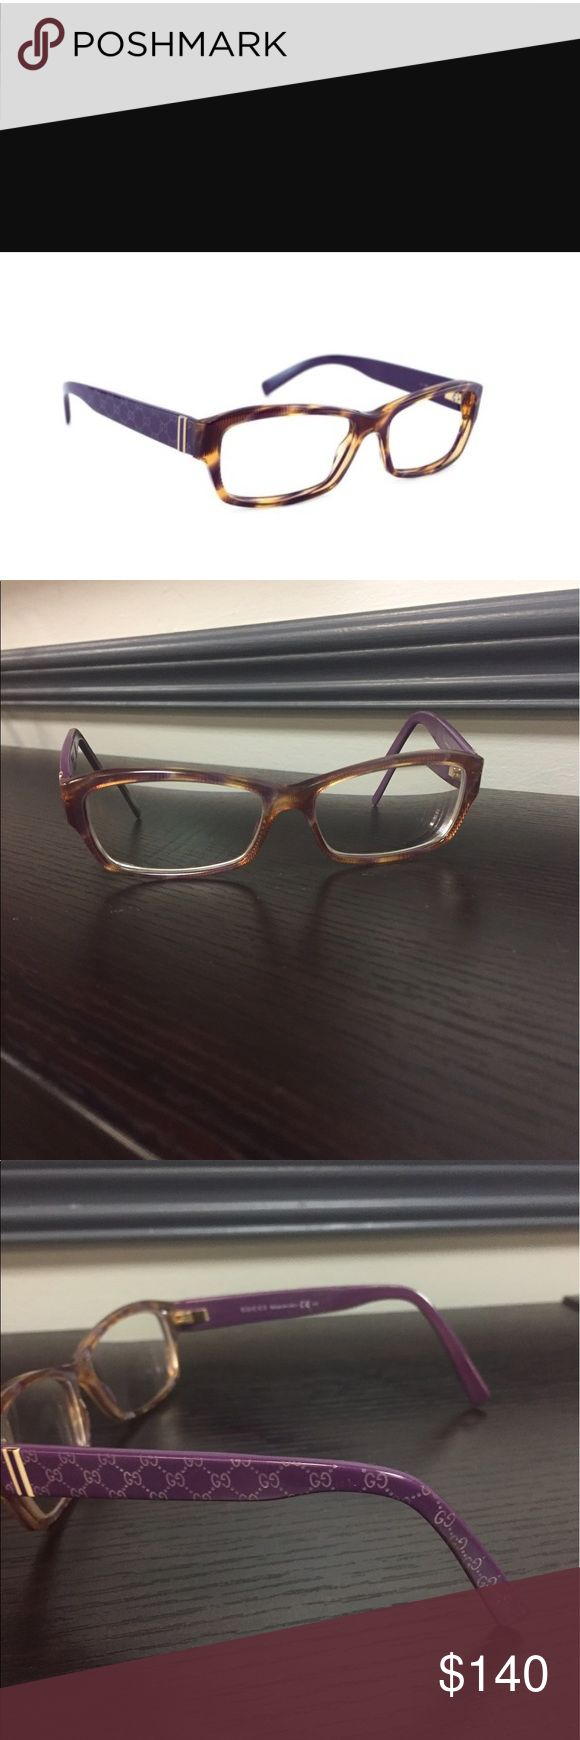 Gucci GG 3198 037 Eyeglasses Violet Beige Rx Lens Gucci GG 3198 O37 Eyeglasses. 140mm temple. Violet beige frame. Rx prescription lenses. Minimal wear to eyeglass temples (part that fits on ears). Frame and lenses in good condition. Hinges and screw in tact. Frame is purple (violet and beige) resembling a tortoise shell look. Excellent used condition. 😊 Thank you. Gucci Accessories Glasses